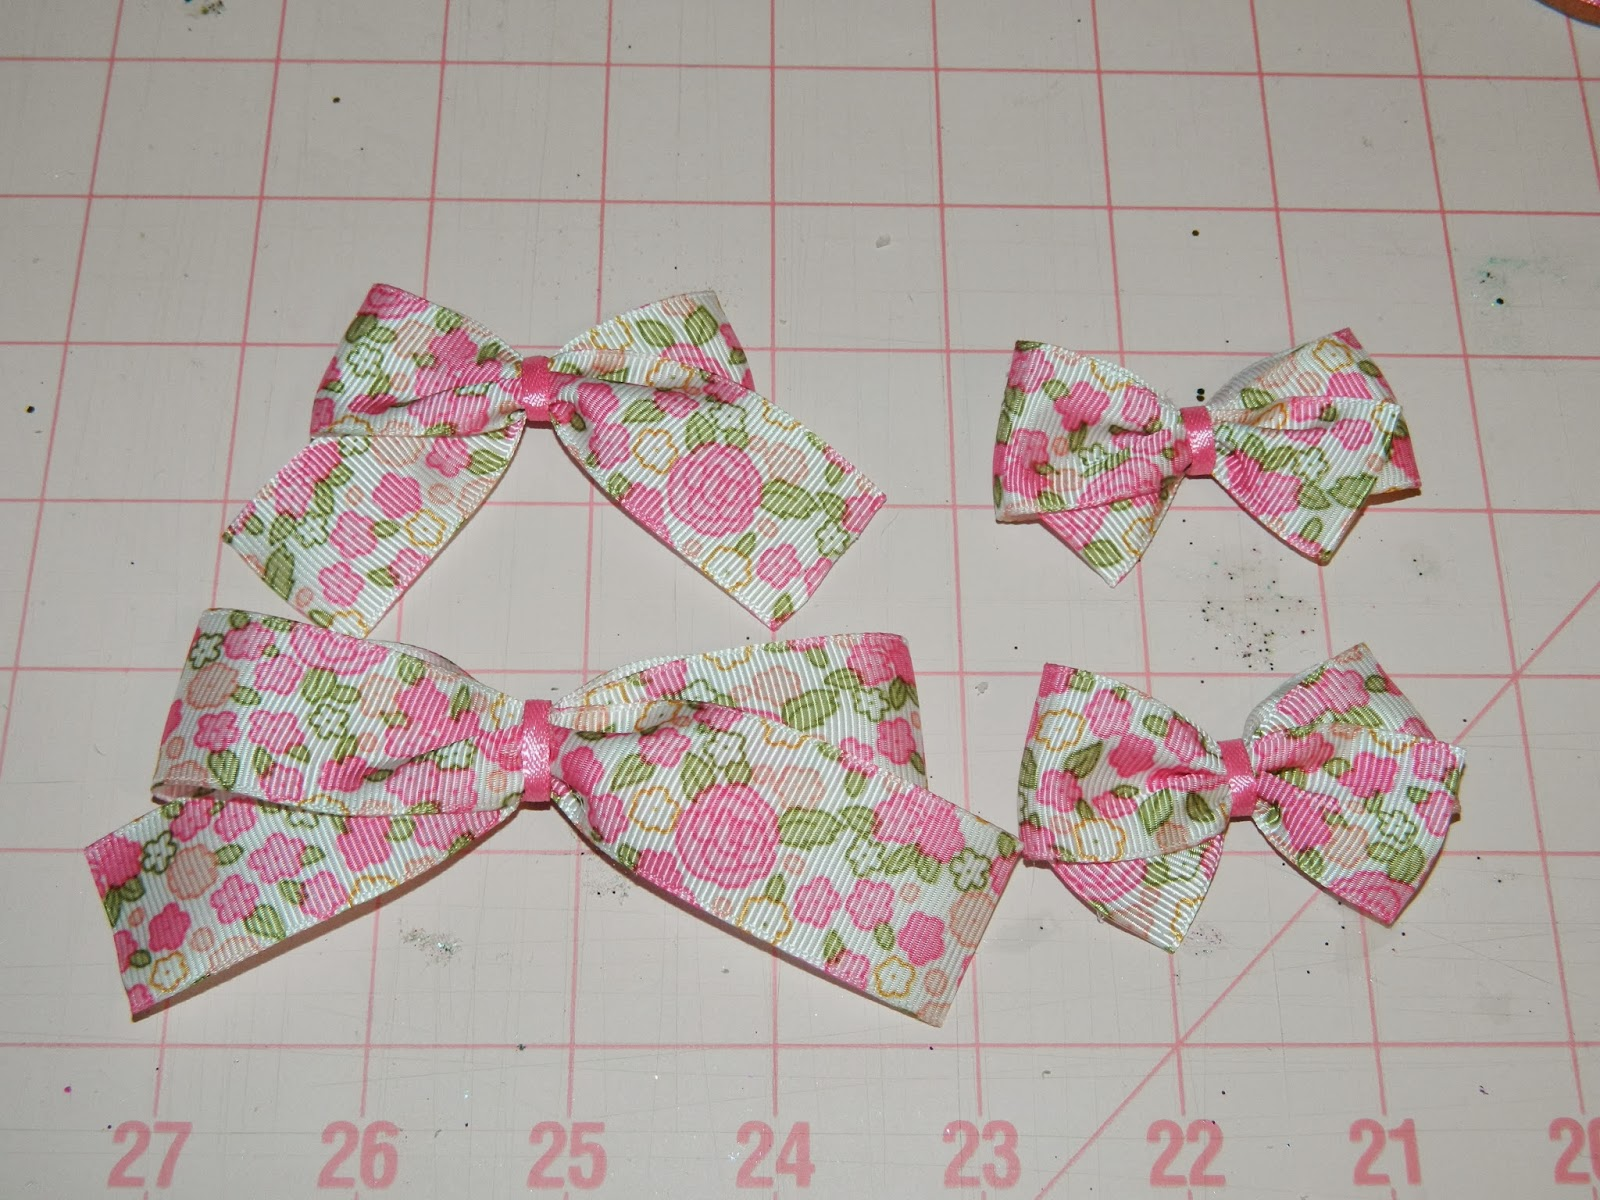 Lolita Garden and Crafts by Gigi: Super Easy Perfect Ribbon